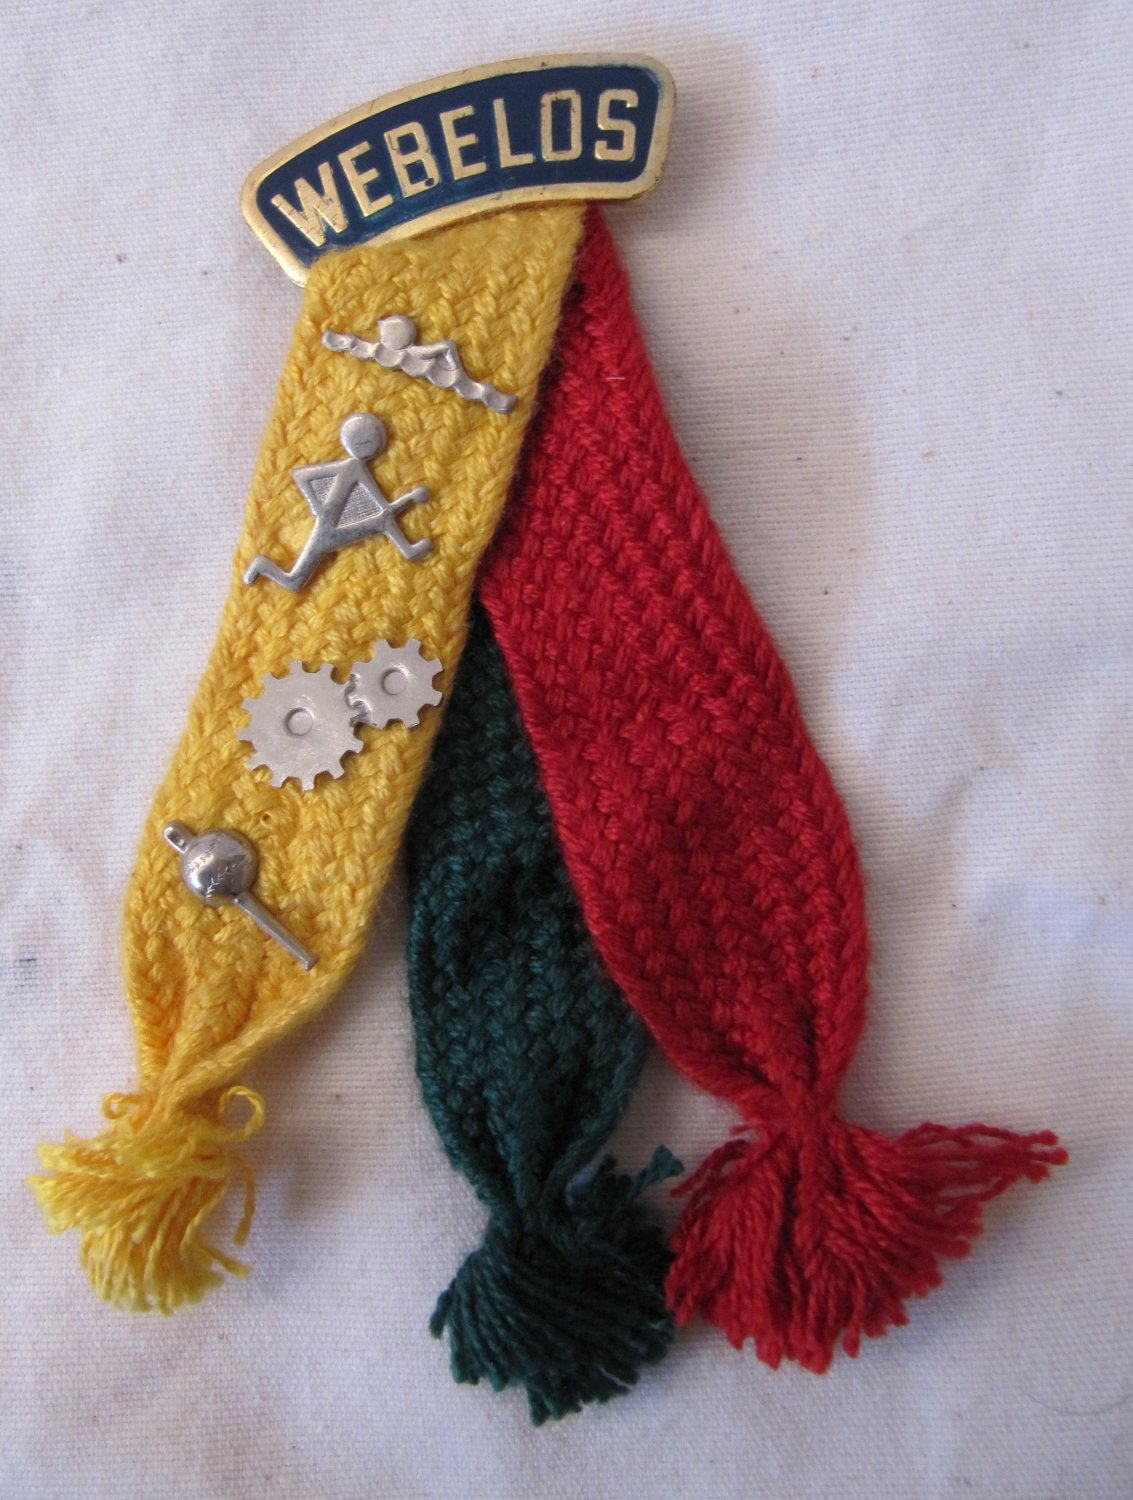 Vintage Boy Scout Webelos Colors Pin with 4 Activity Pins Sportsman Engineer Athlete Aquanaut